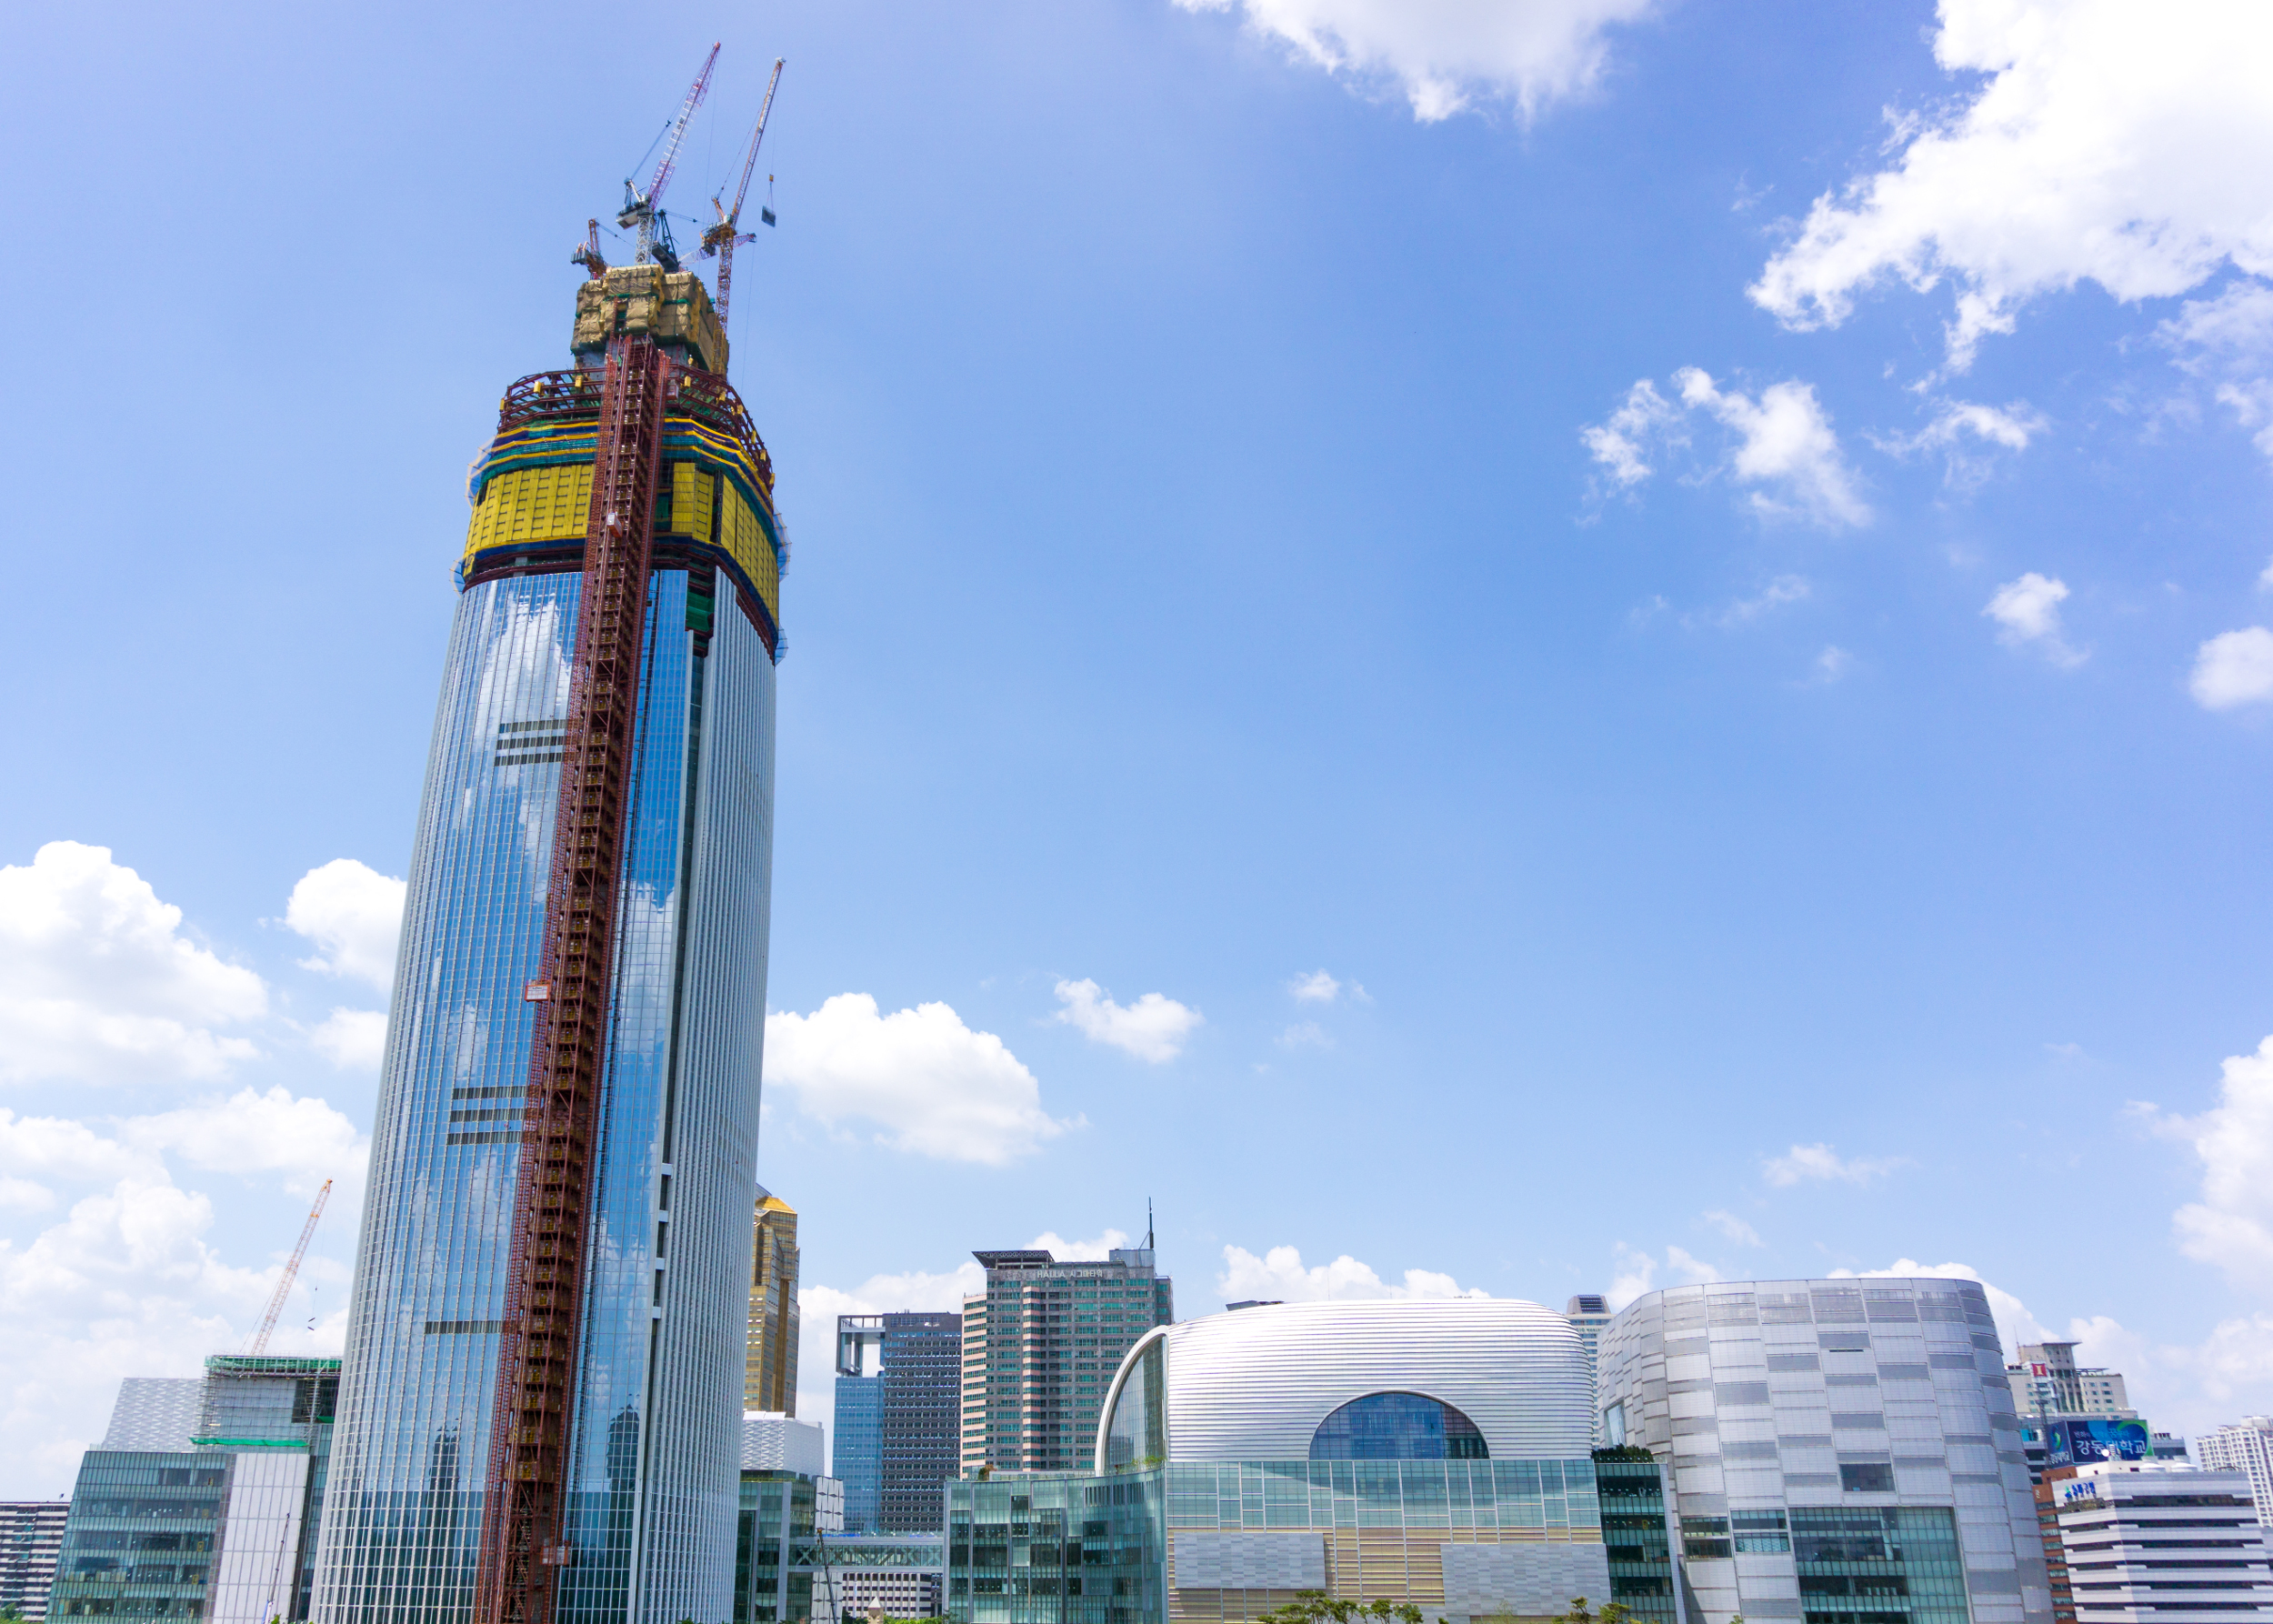 The still-under-construction Lotte World Tower as it looked on July 4, 2014. (Photo by Teddy Cross via Wikimedia Commons)